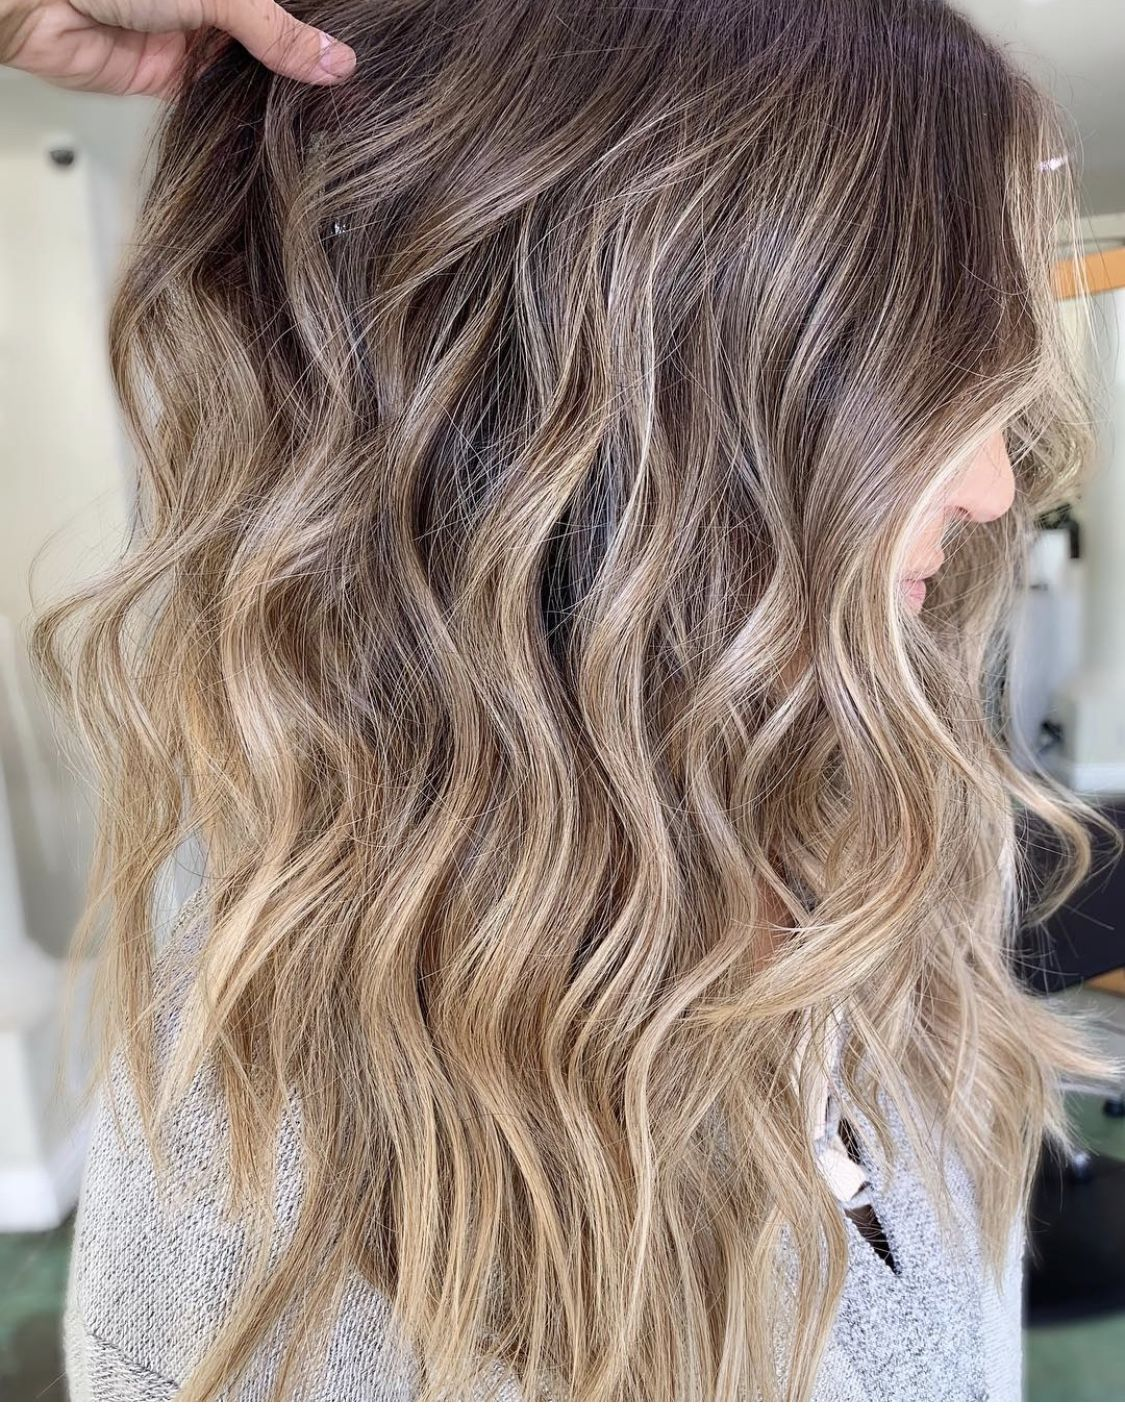 I really love how all these tones blend together! Check out more of my work on Instagram!- paintedbylauralai #balayage #beigeblonde #beigebalayage #beigehaircolor #beige #Blonde #blondehaircolor #haircolor #blondebalayage #highlights #foilayage #sandyblonde #sandyblondebalayage #sandyblondehair #sandyblondehaircolor #livedincolor #livedinblonde #brunette #brunettebalayage #naturalbalayage #brownhair #blondehair #dimensionalblonde #bronde #dimensionalbrunette #summerhair